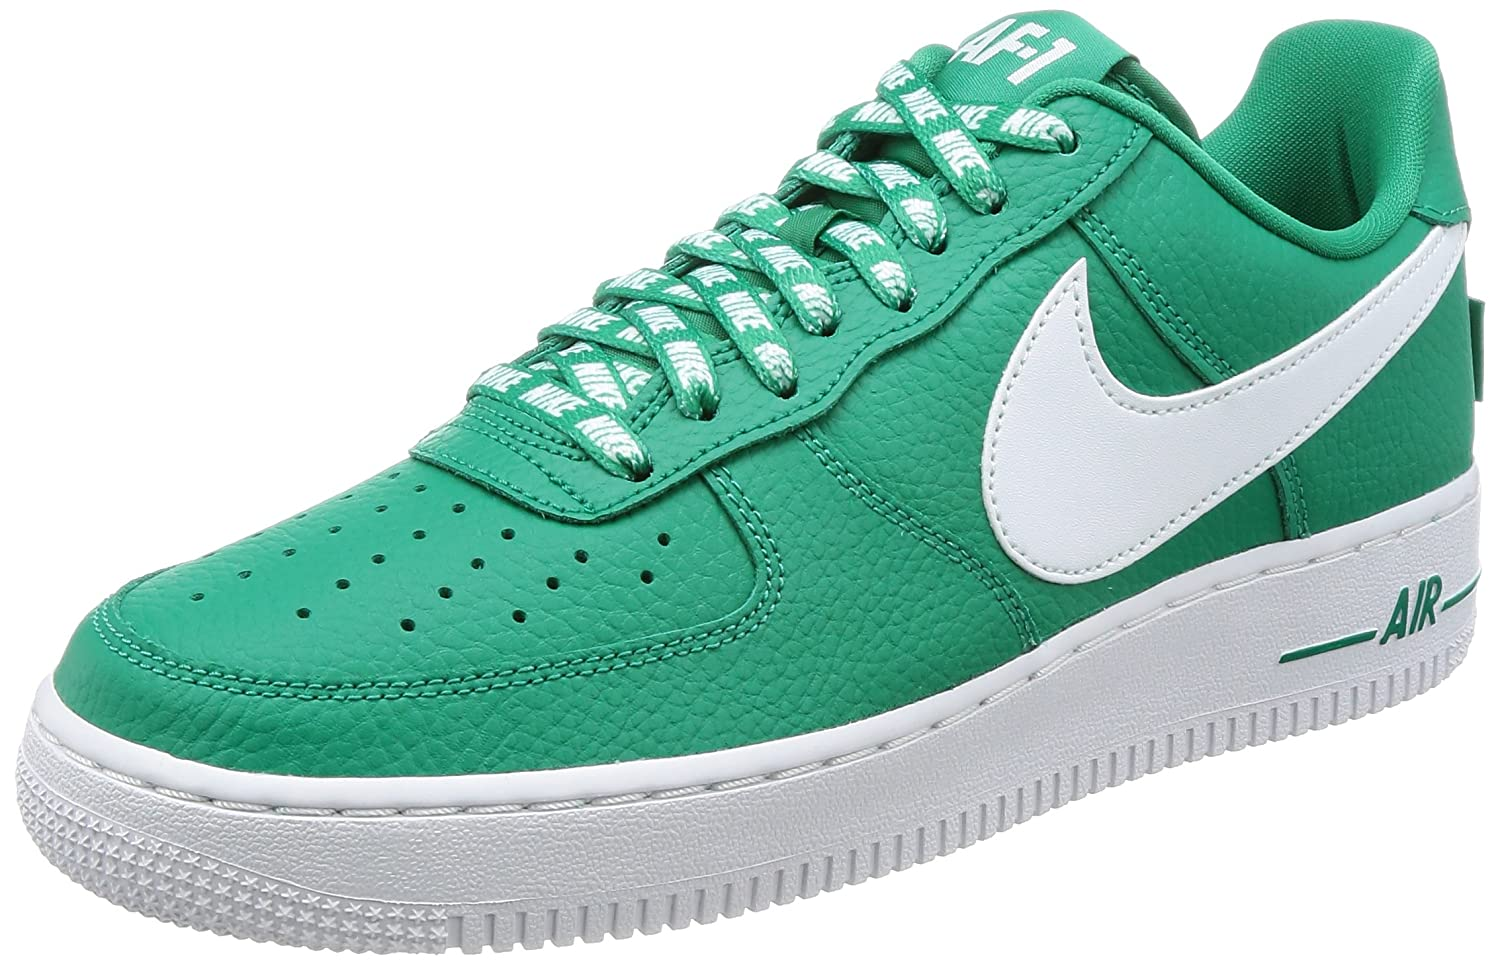 NIKE Air Force 1 '07 Lv8 Mens 823511-302 B075XJRD2W 9.5 D(M) US|Neptune Green/White